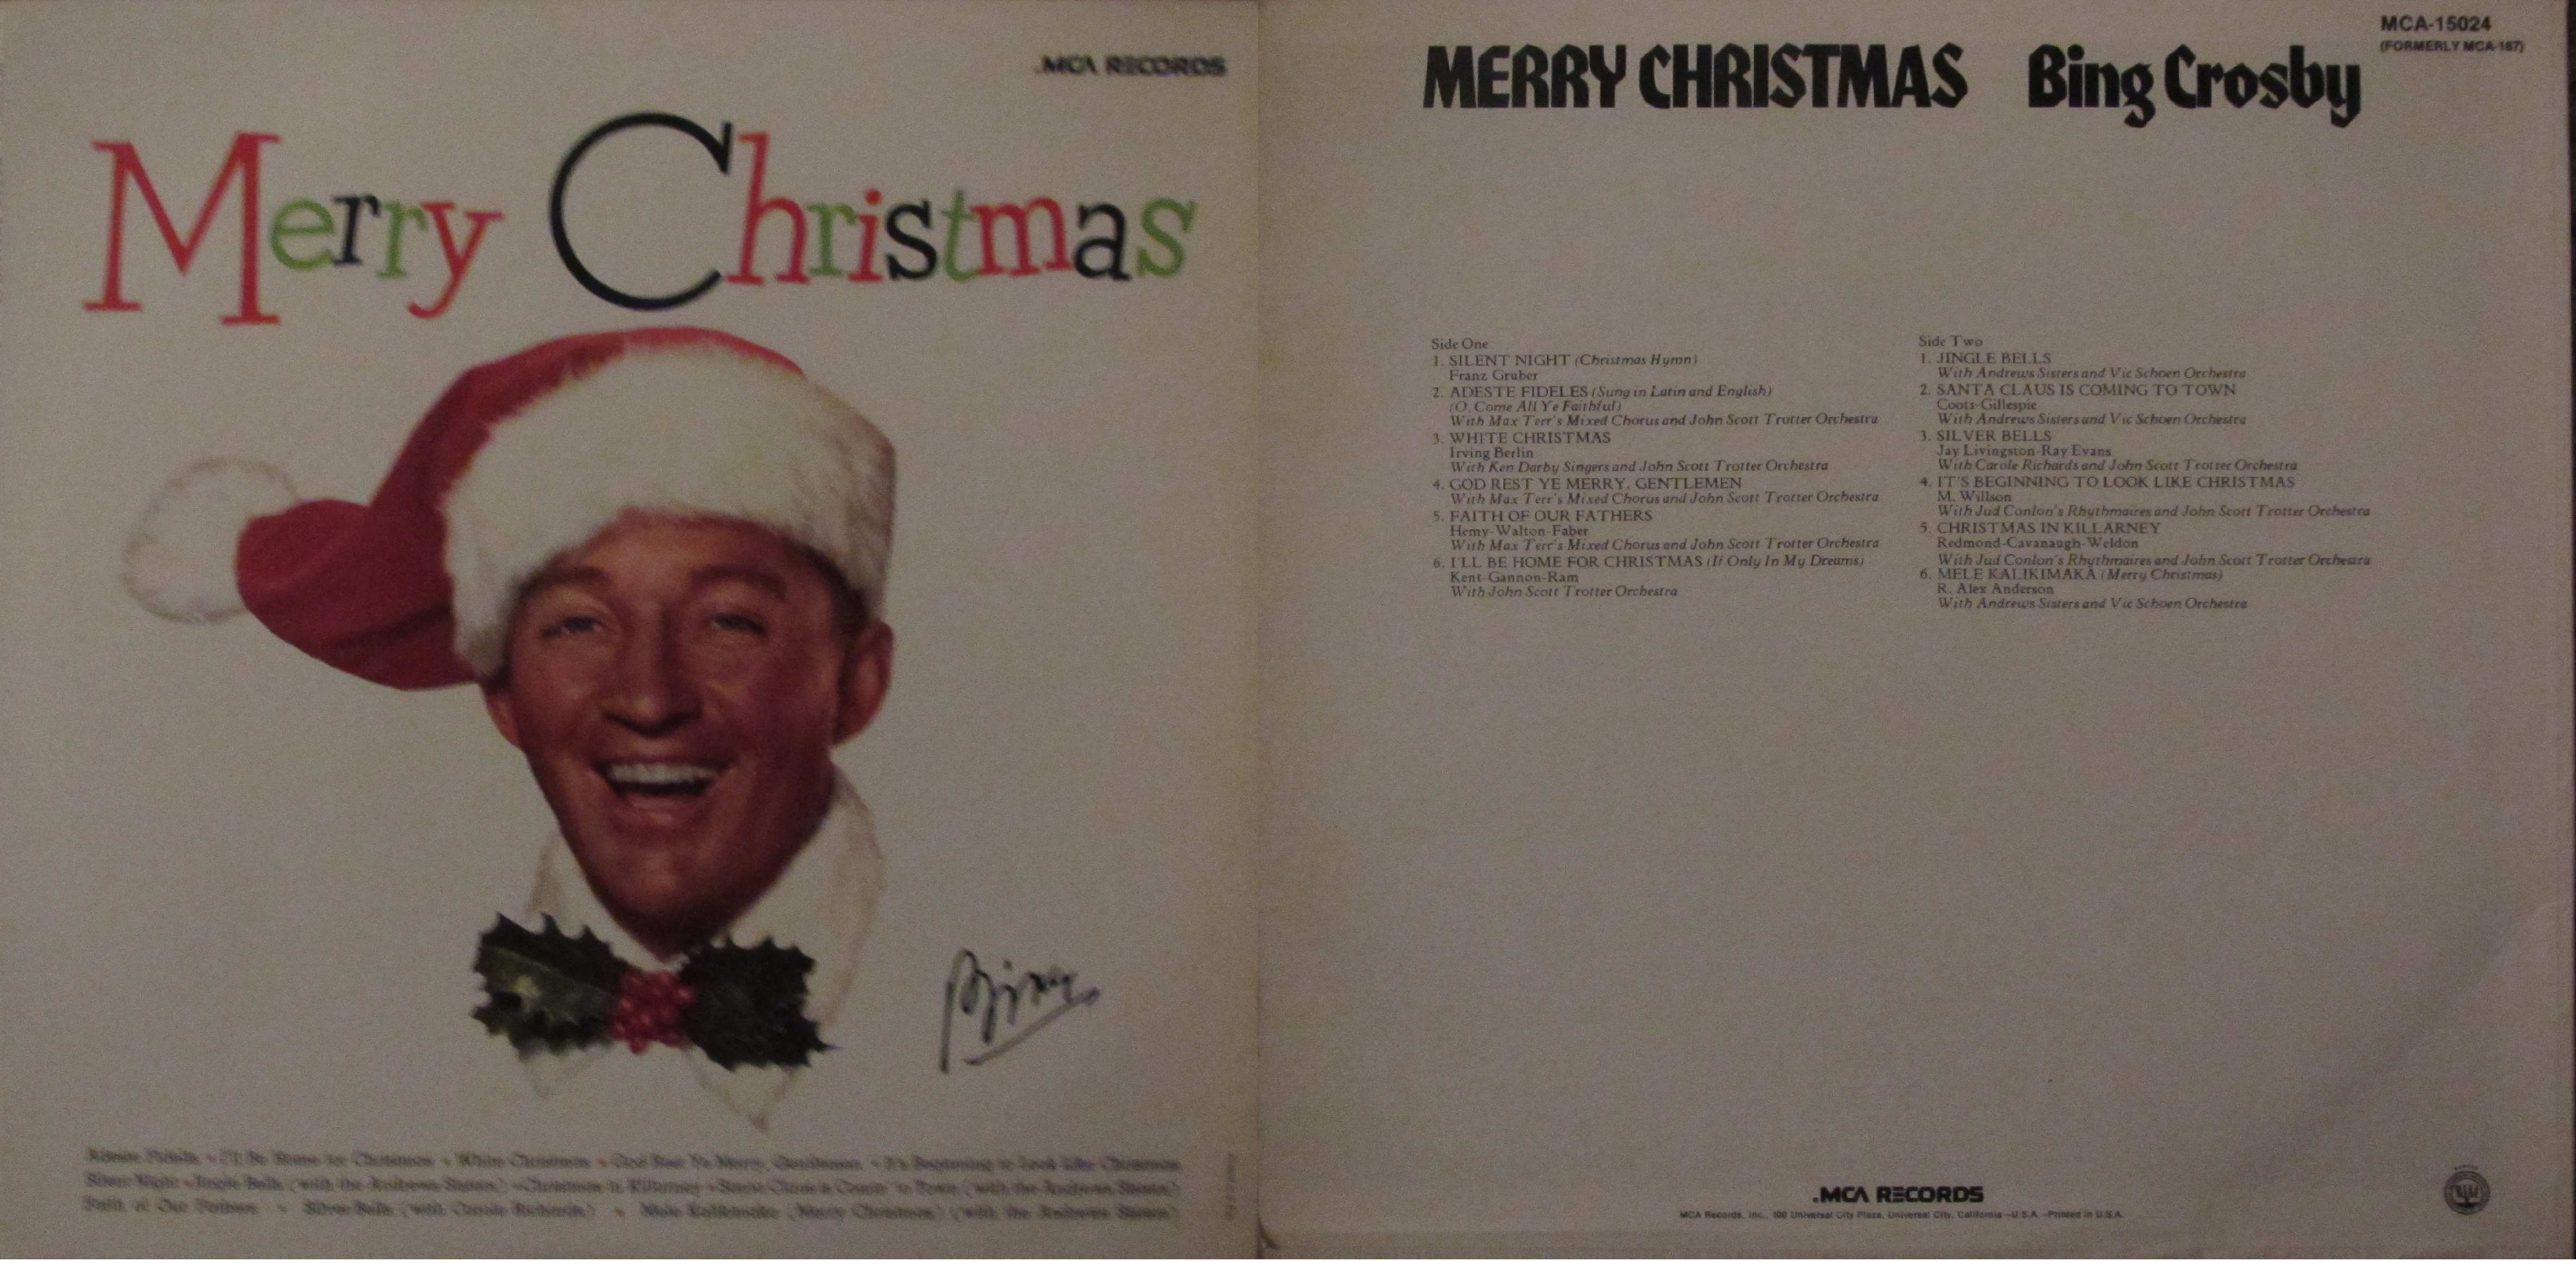 merry christmas - Best Selling Christmas Albums